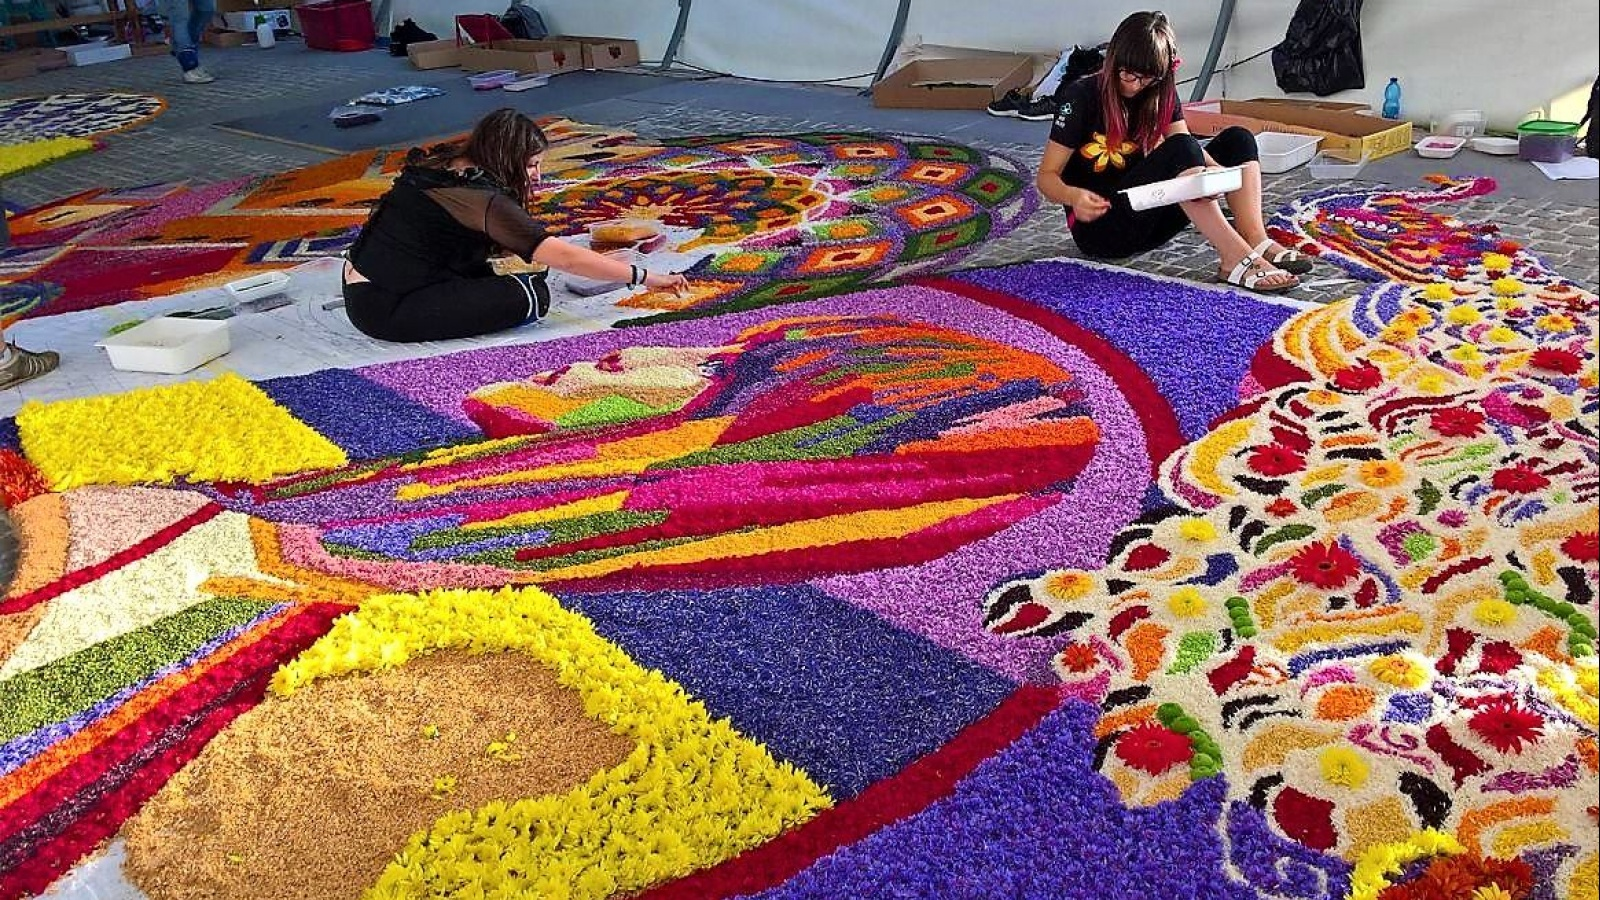 INFIORART. GUIDED TOURS OF THE TOWN AND ITS FLORAL CARPETS